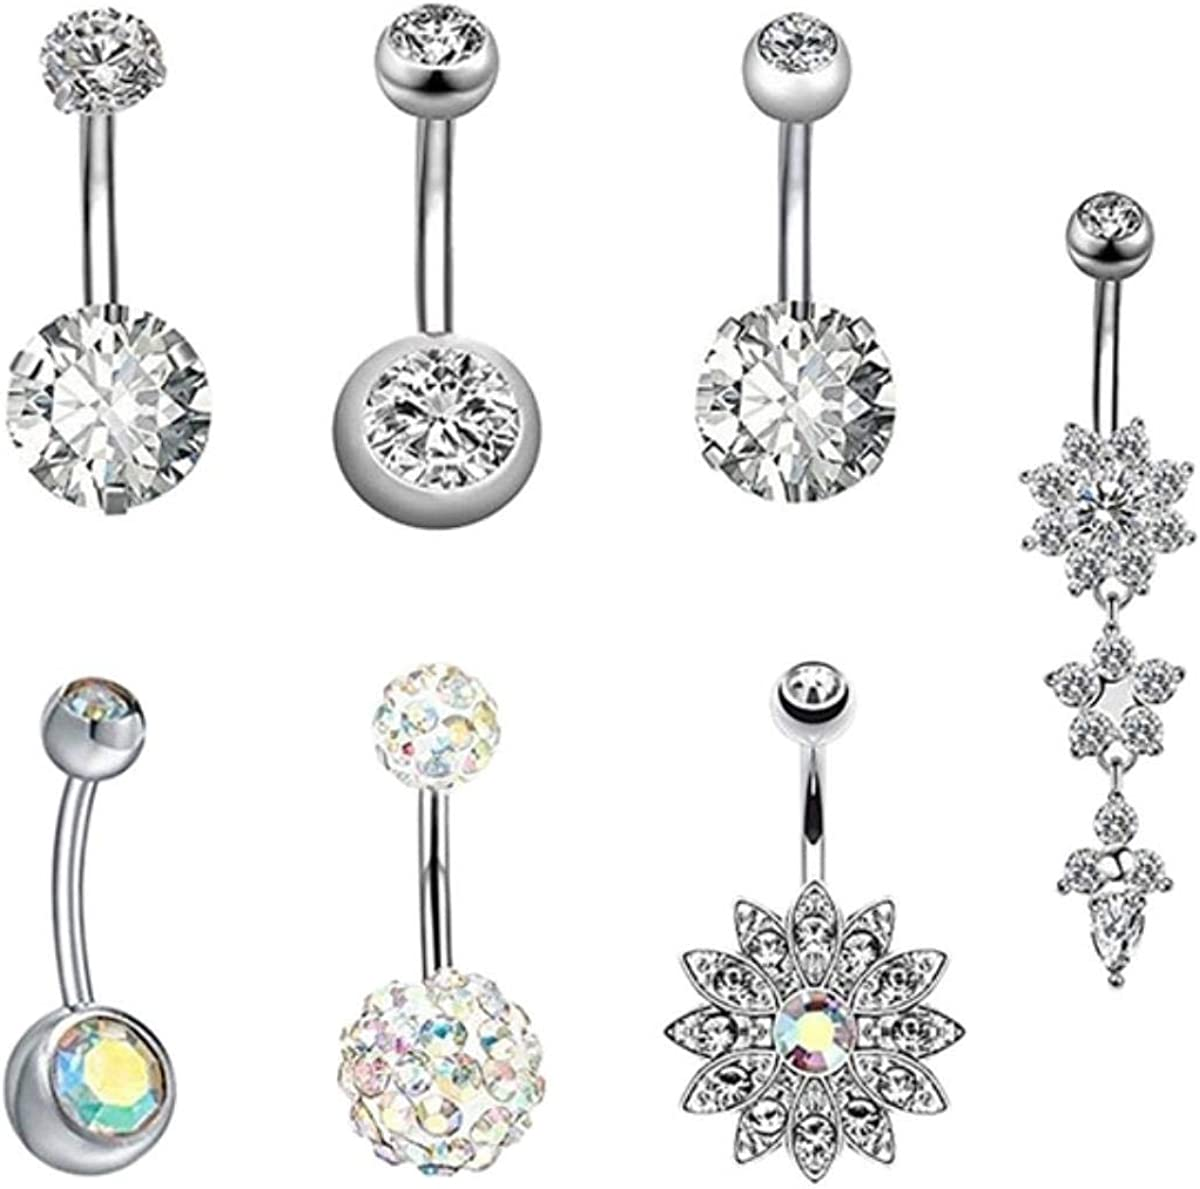 Anime DIY 7Pcs/Set New Summer Style Umbilical Nails Set Navel Body Piercing Stainless Steel Crystal Belly Button Ring For Women Jewelry